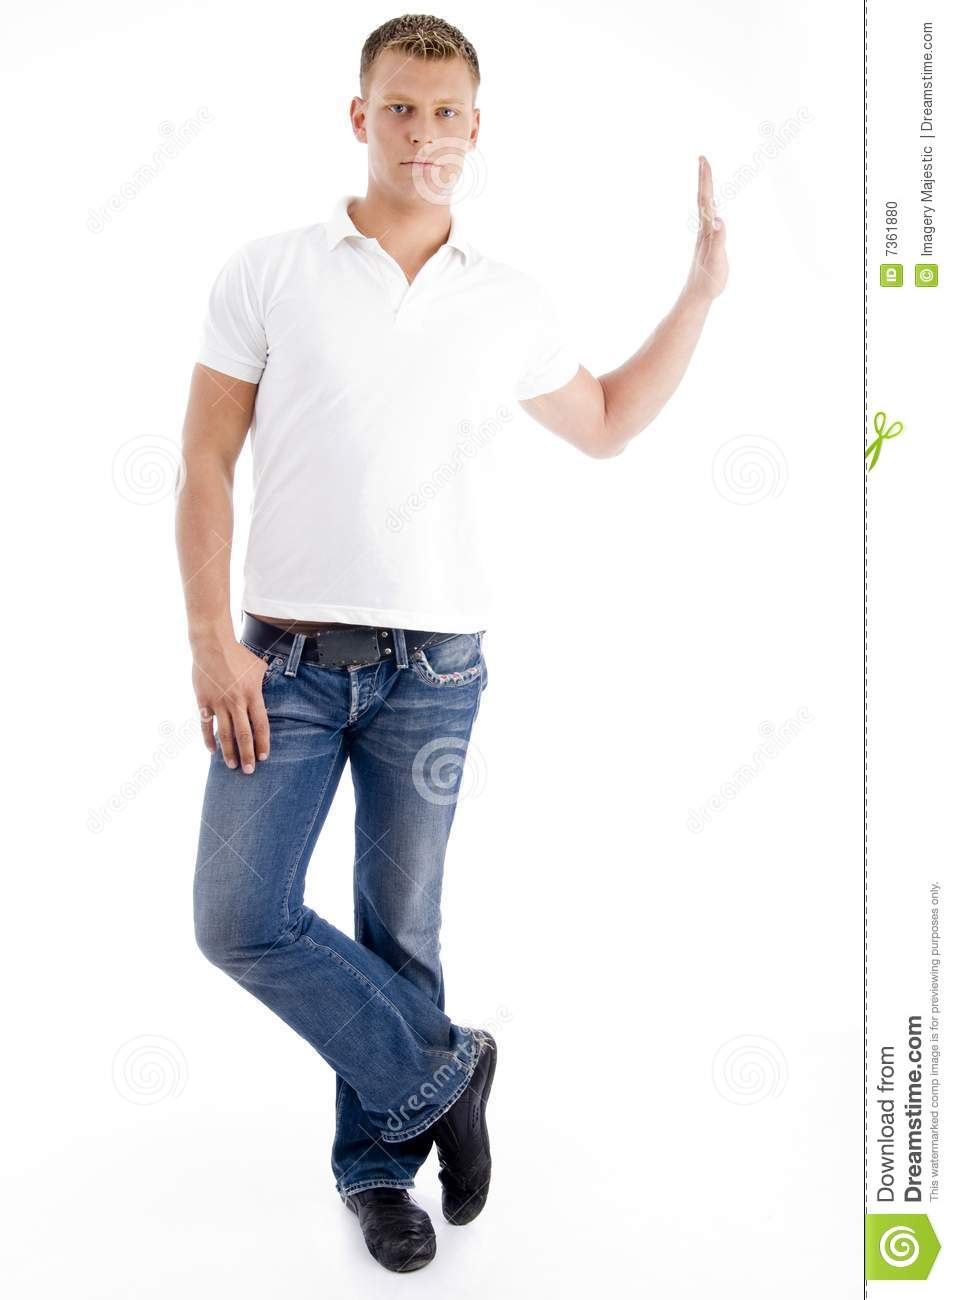 Stylish Standing Pose Of Man Stock Photo Image Of Isolated Years